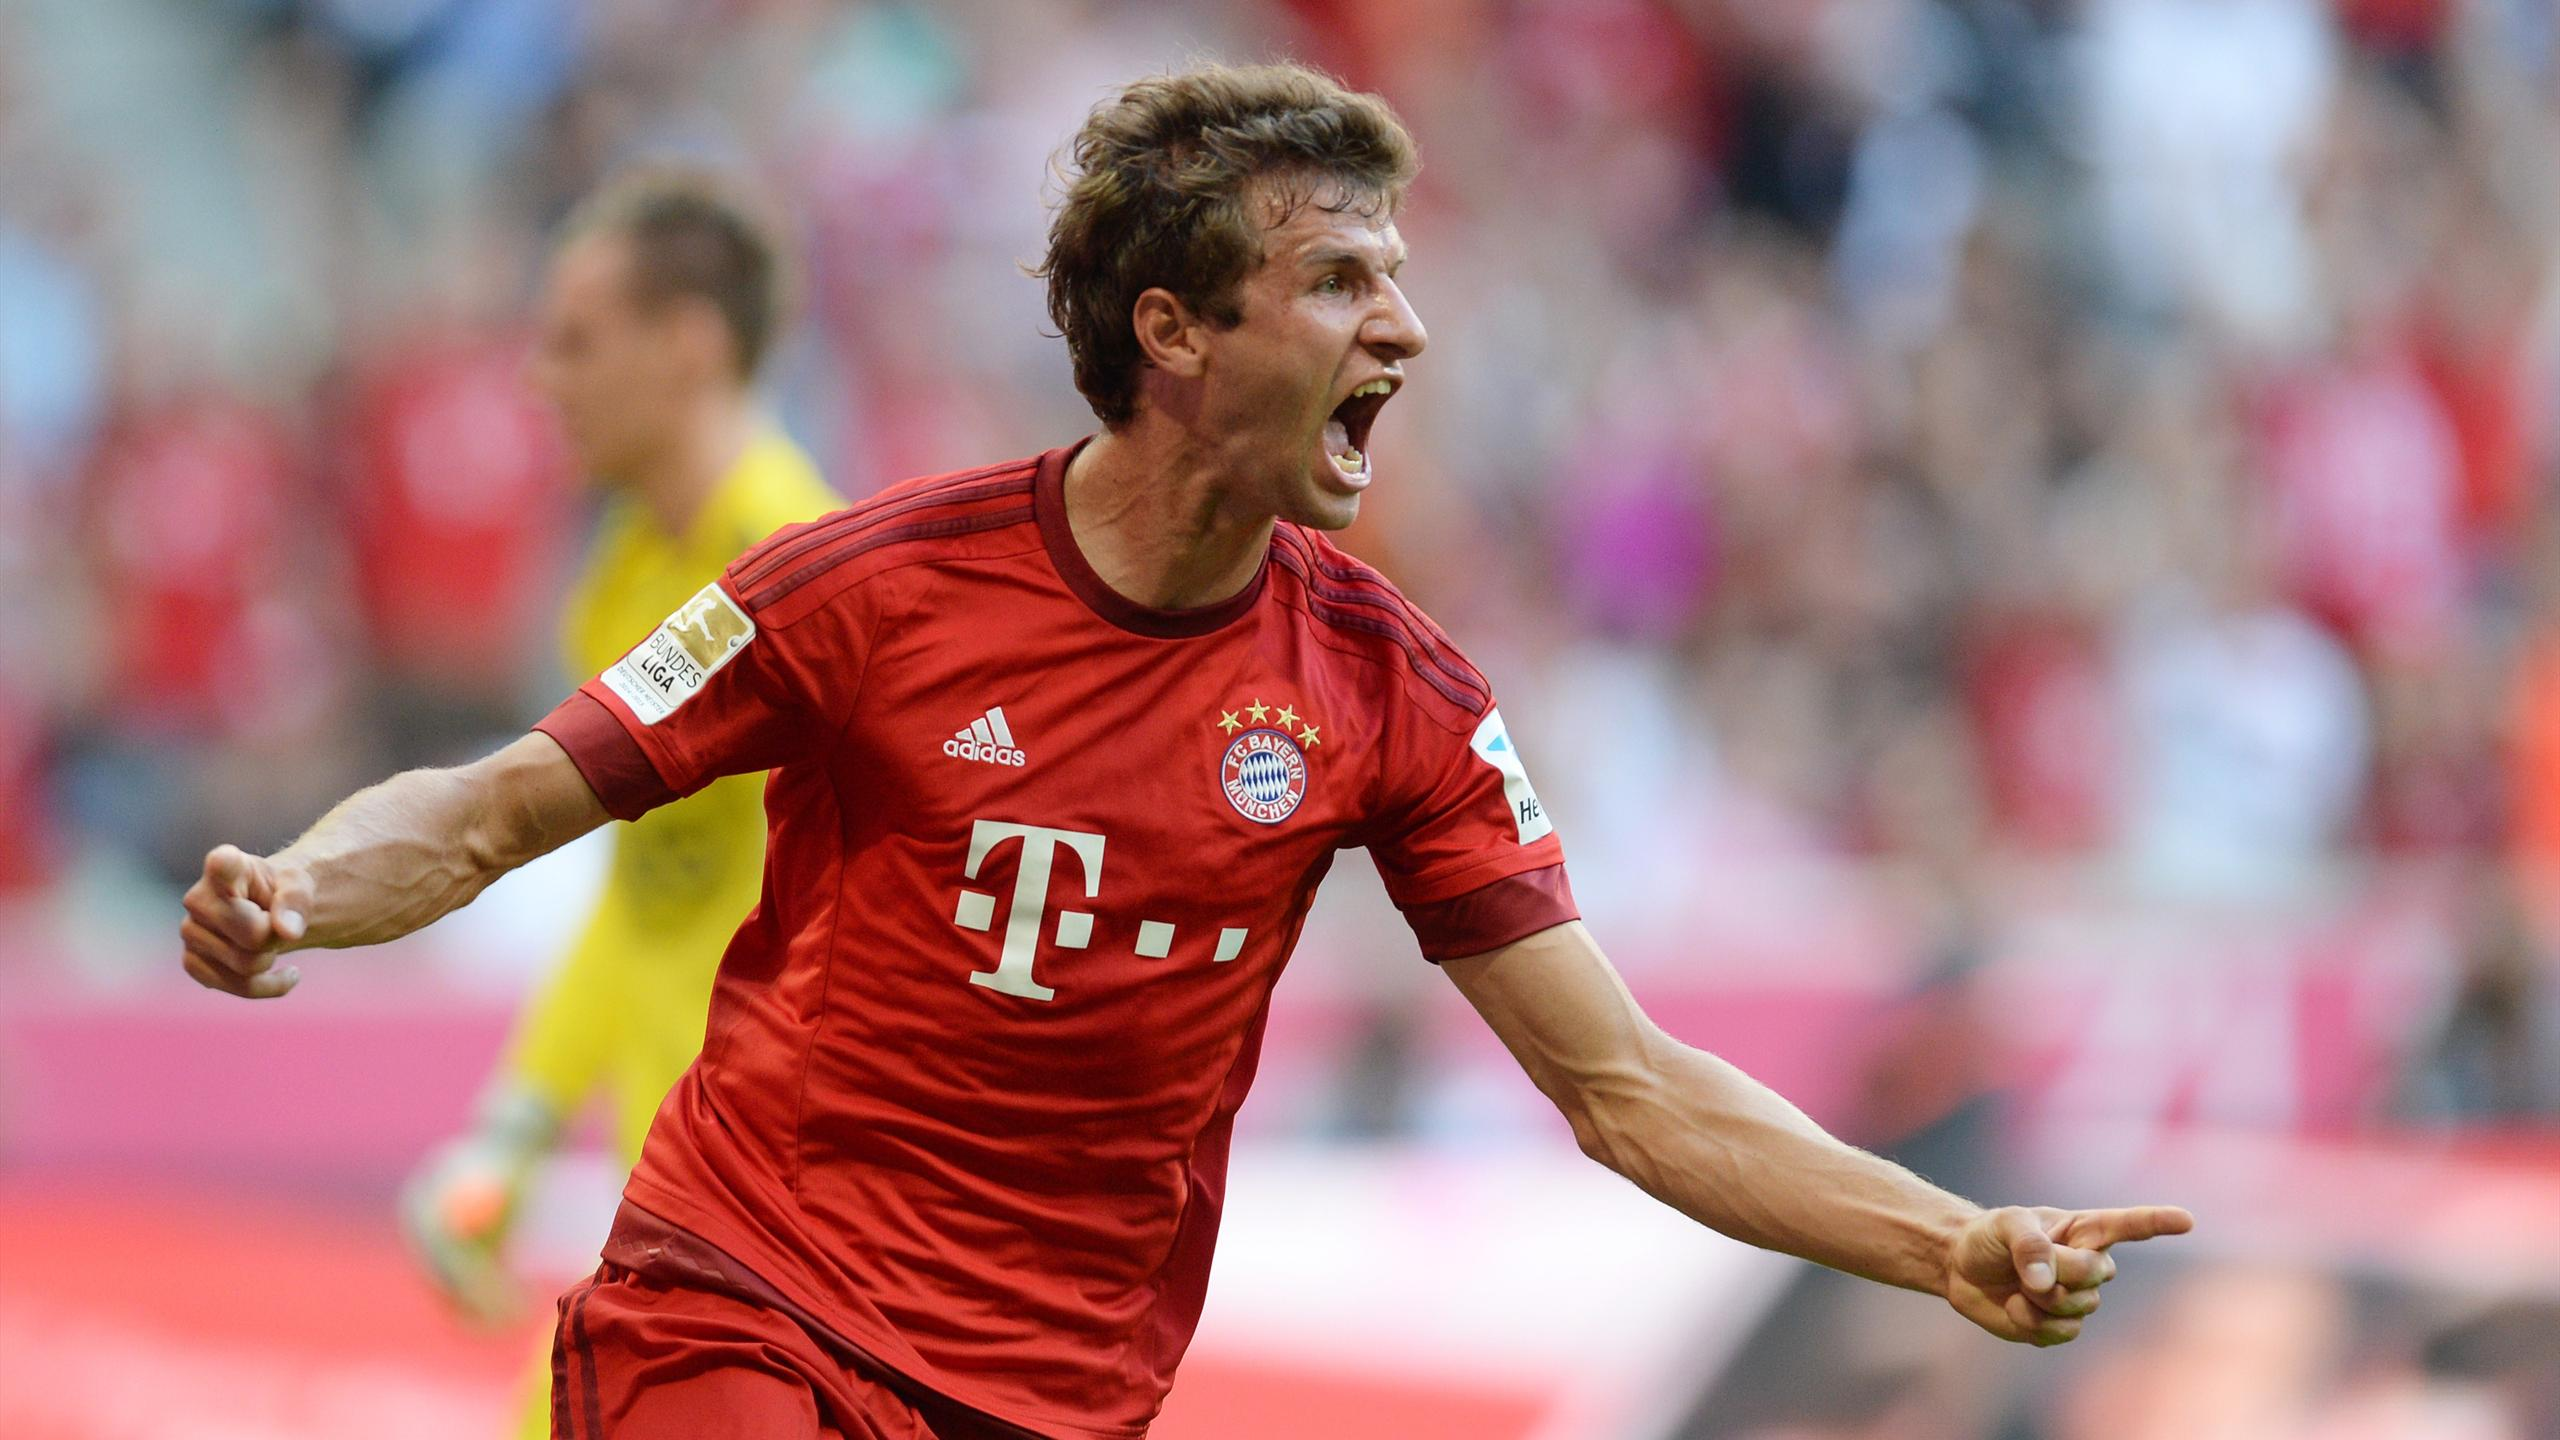 Thomas Müller of Bayern Munich celebrates